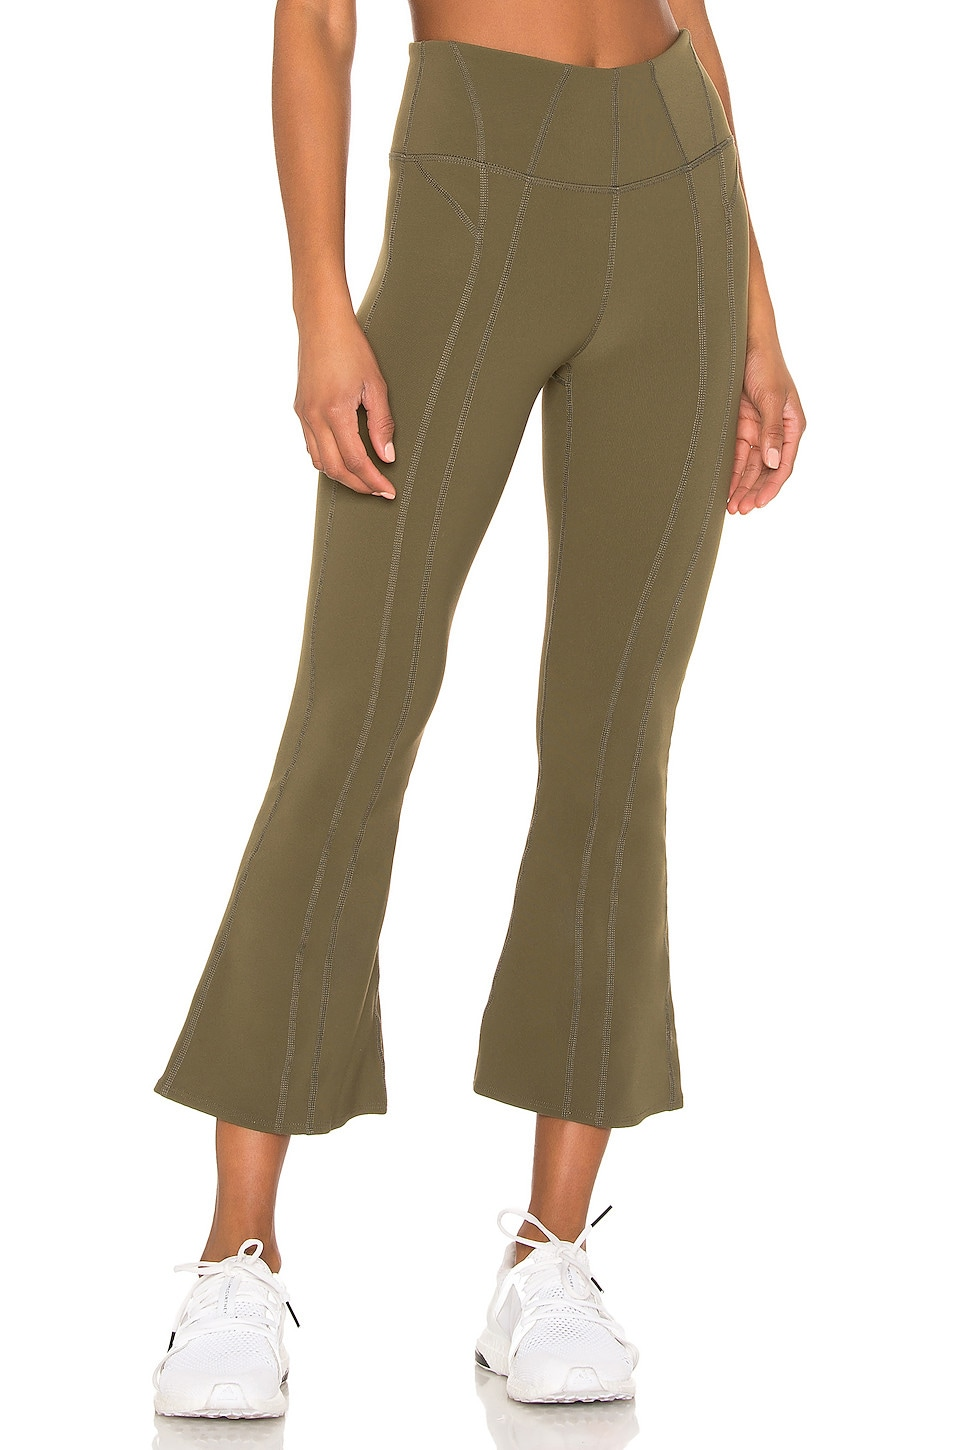 Free People X FP Movement High Rise Lyla Flare in Army